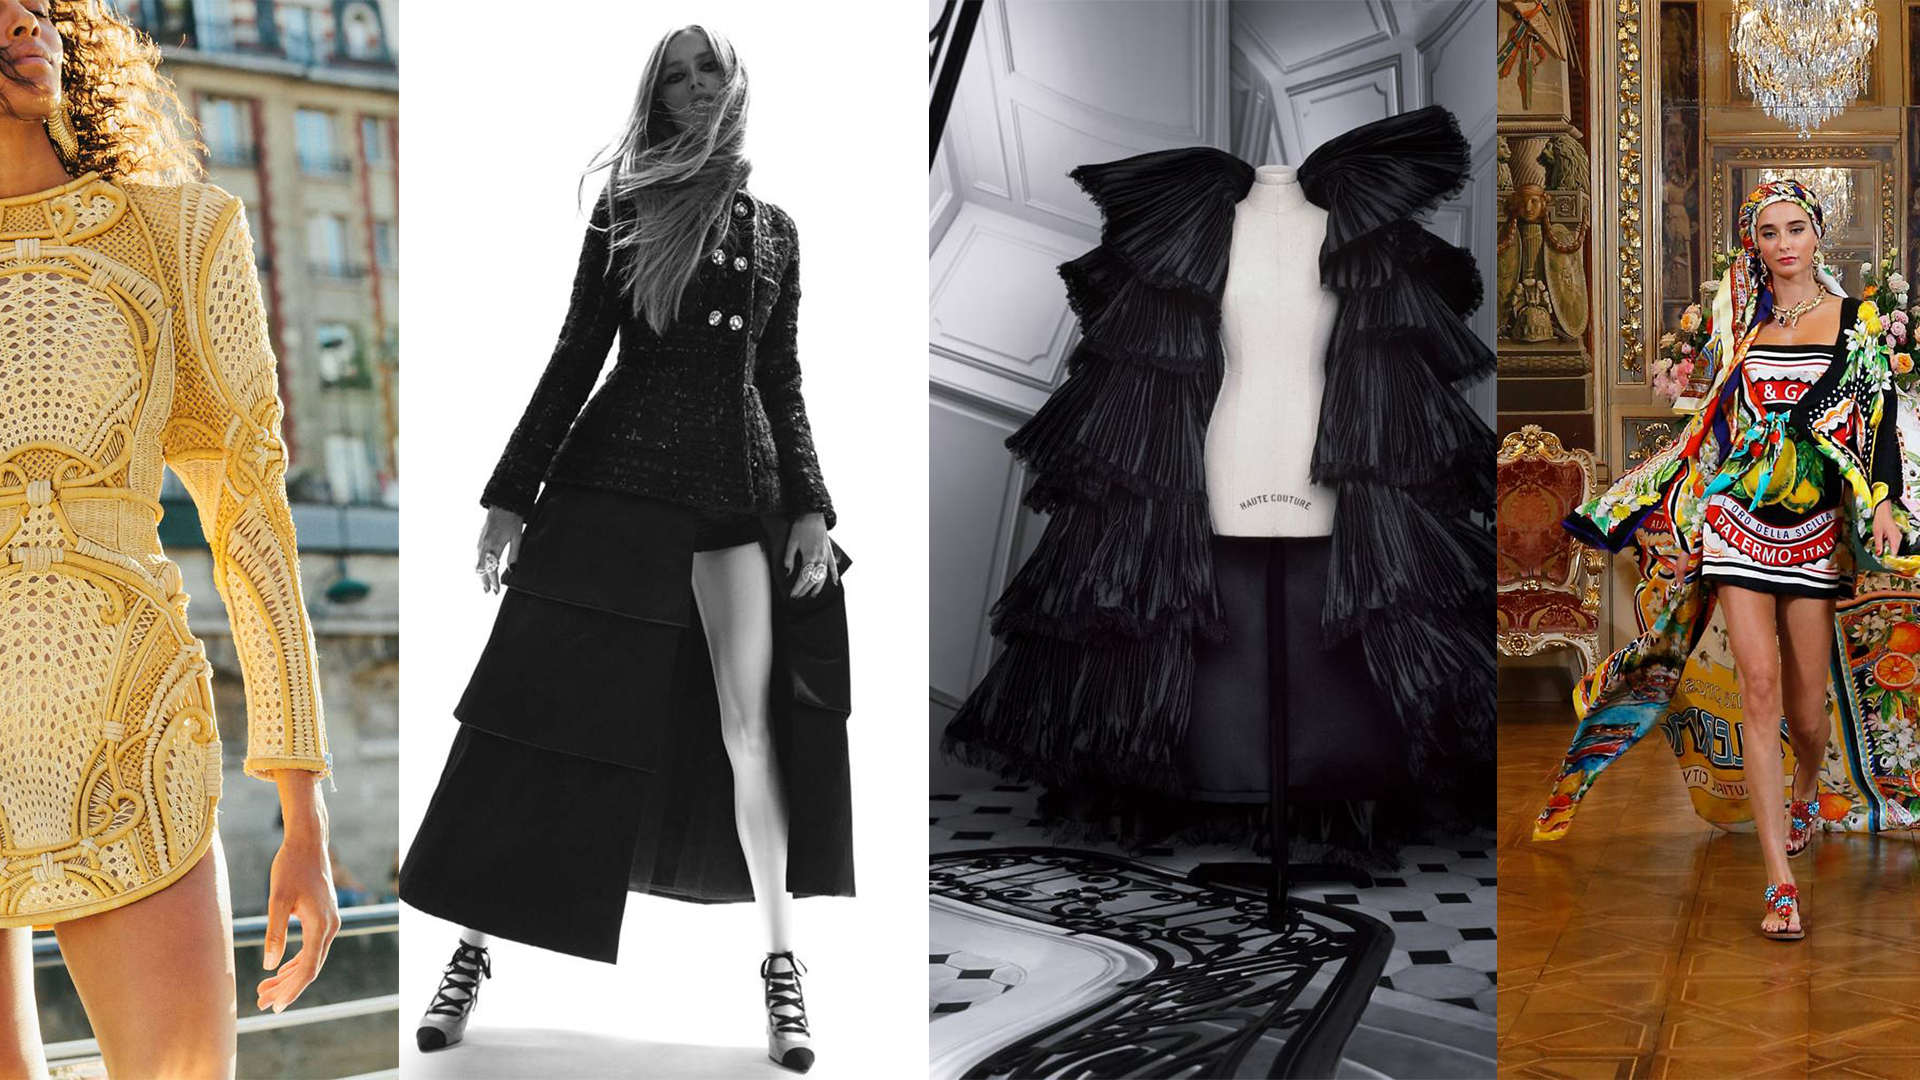 2021 Fashion Trends: Best Haute Couture Looks for Winter 2020/2021